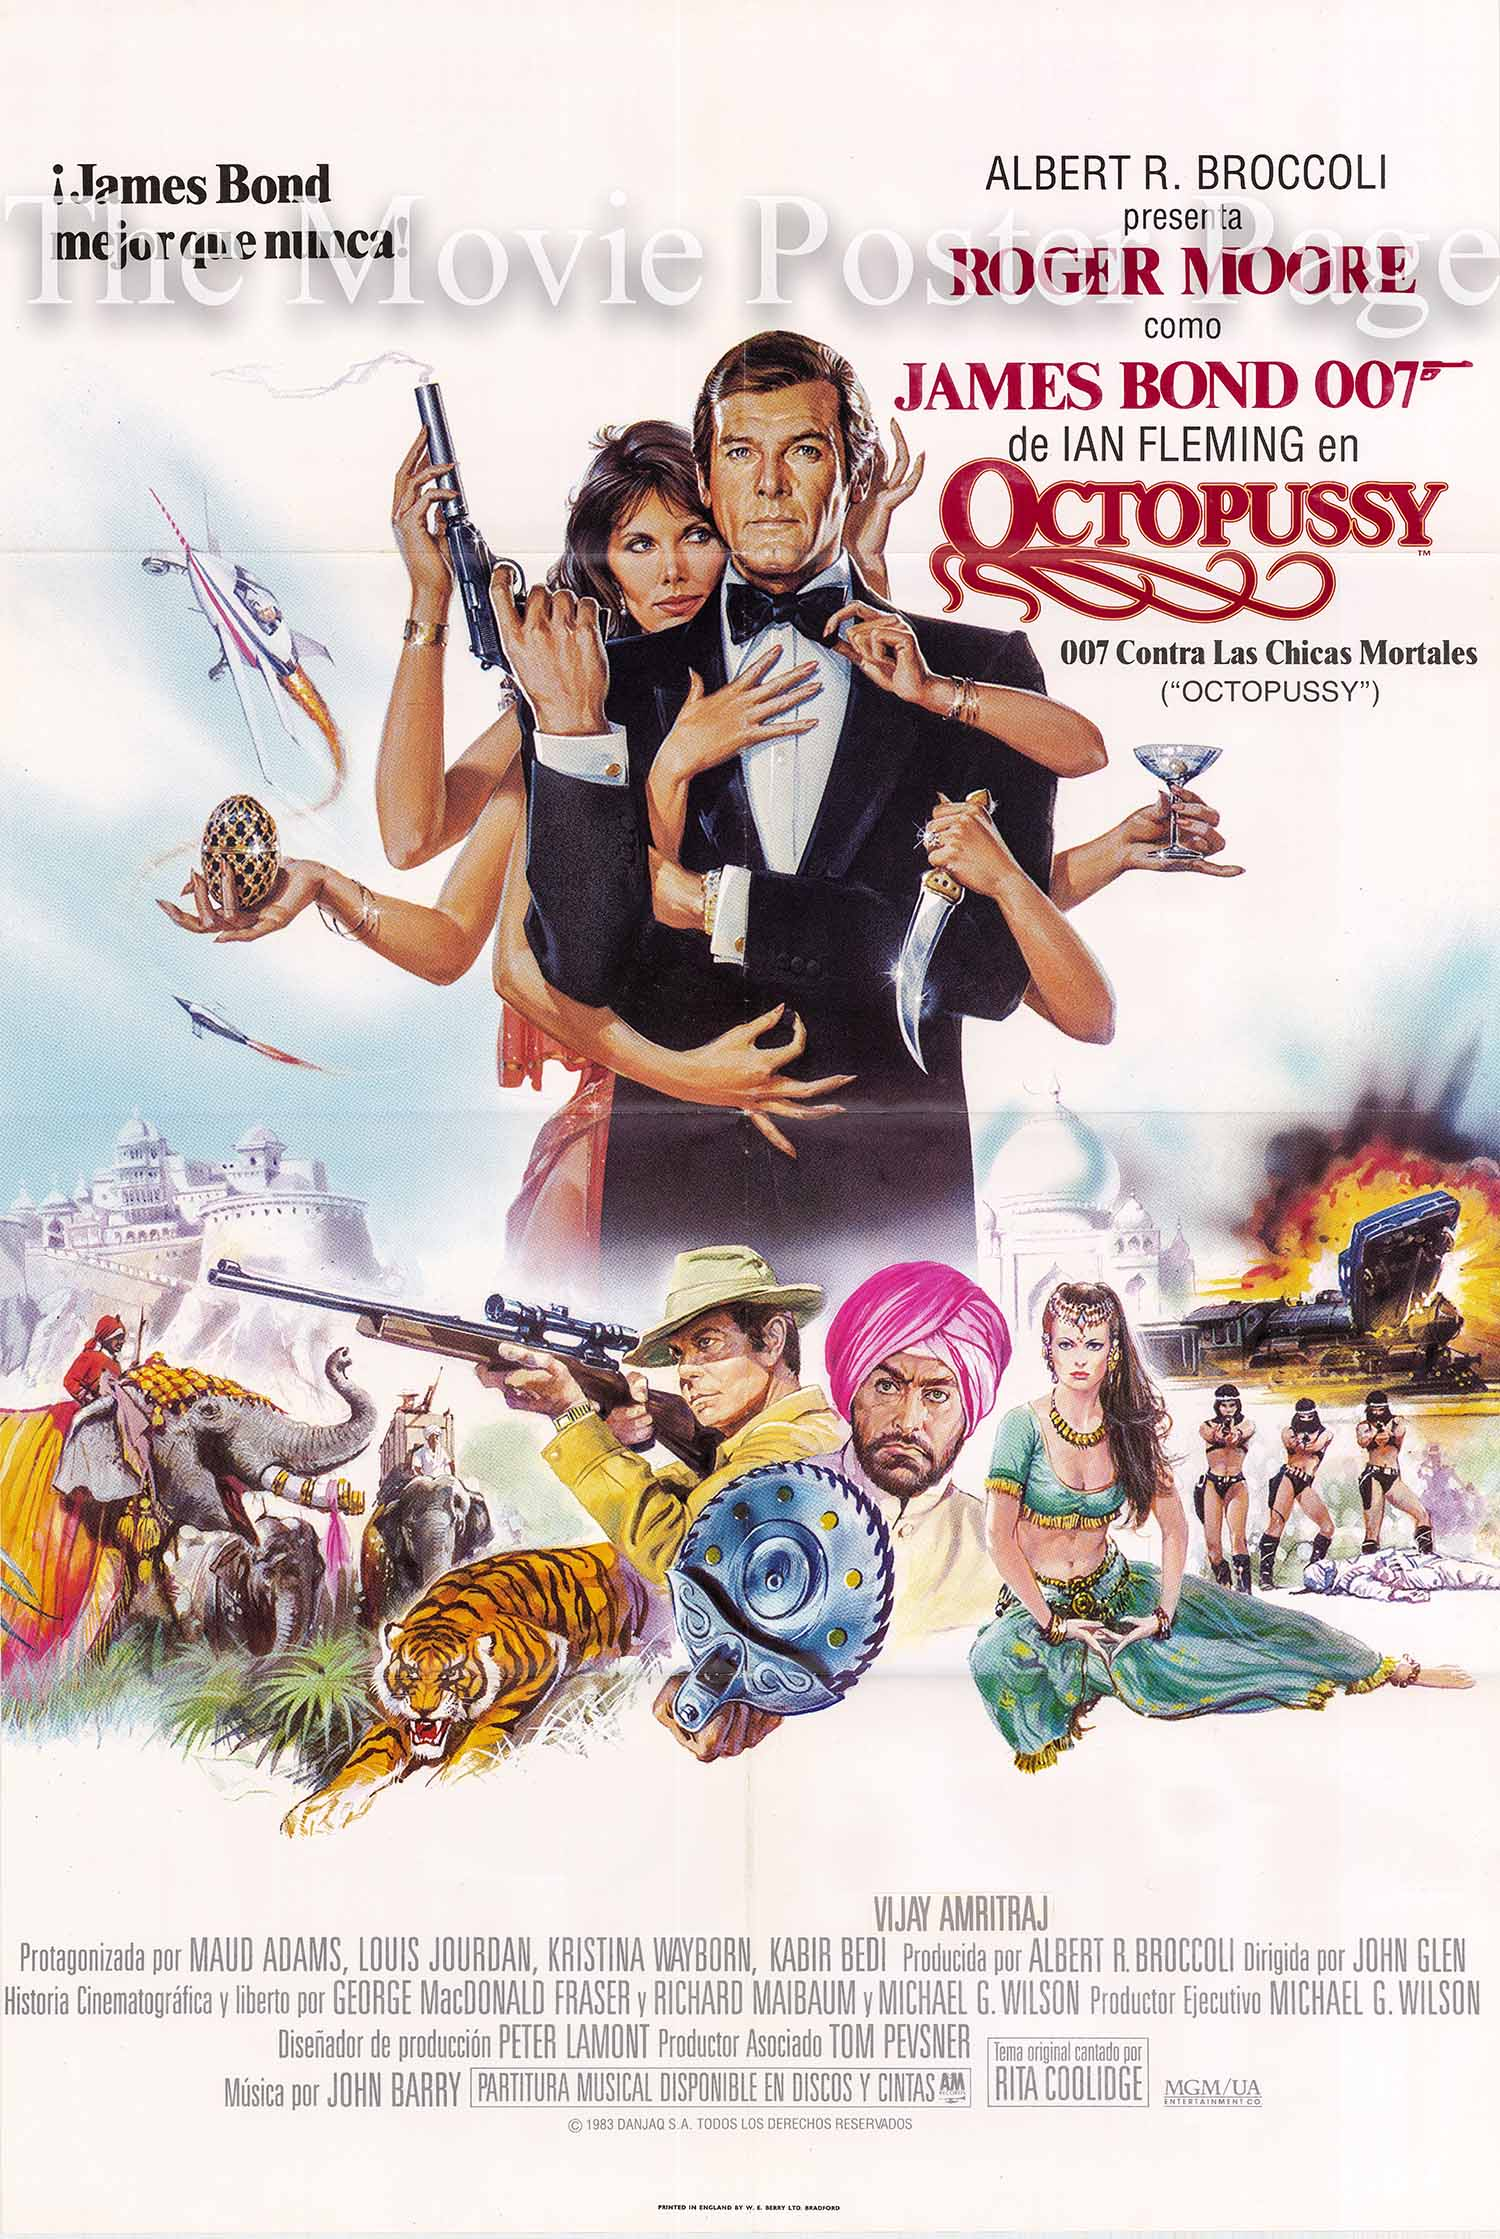 Pictured is a Spanish one-sheet promotional poster for the 1983 John Glen film Octopussy starring Roger Moore as James Bond.